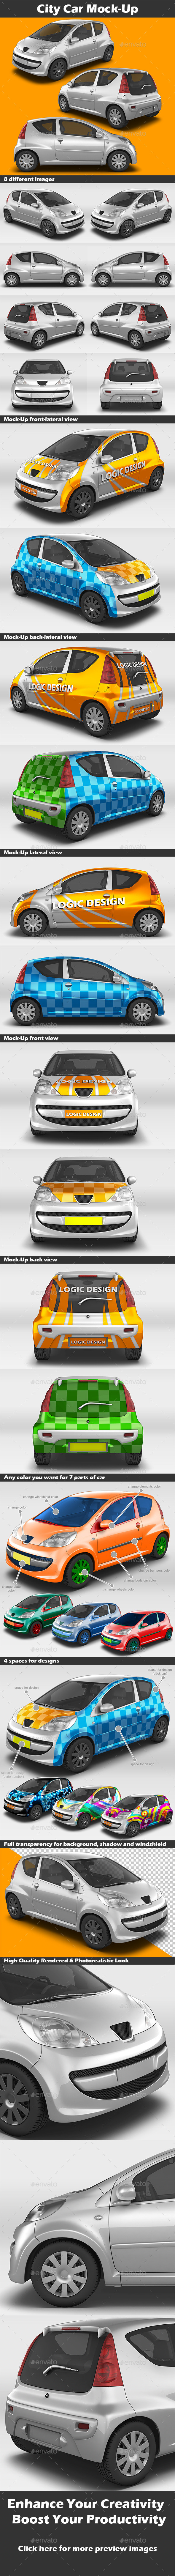 GraphicRiver City Car Mock-Up 11470044